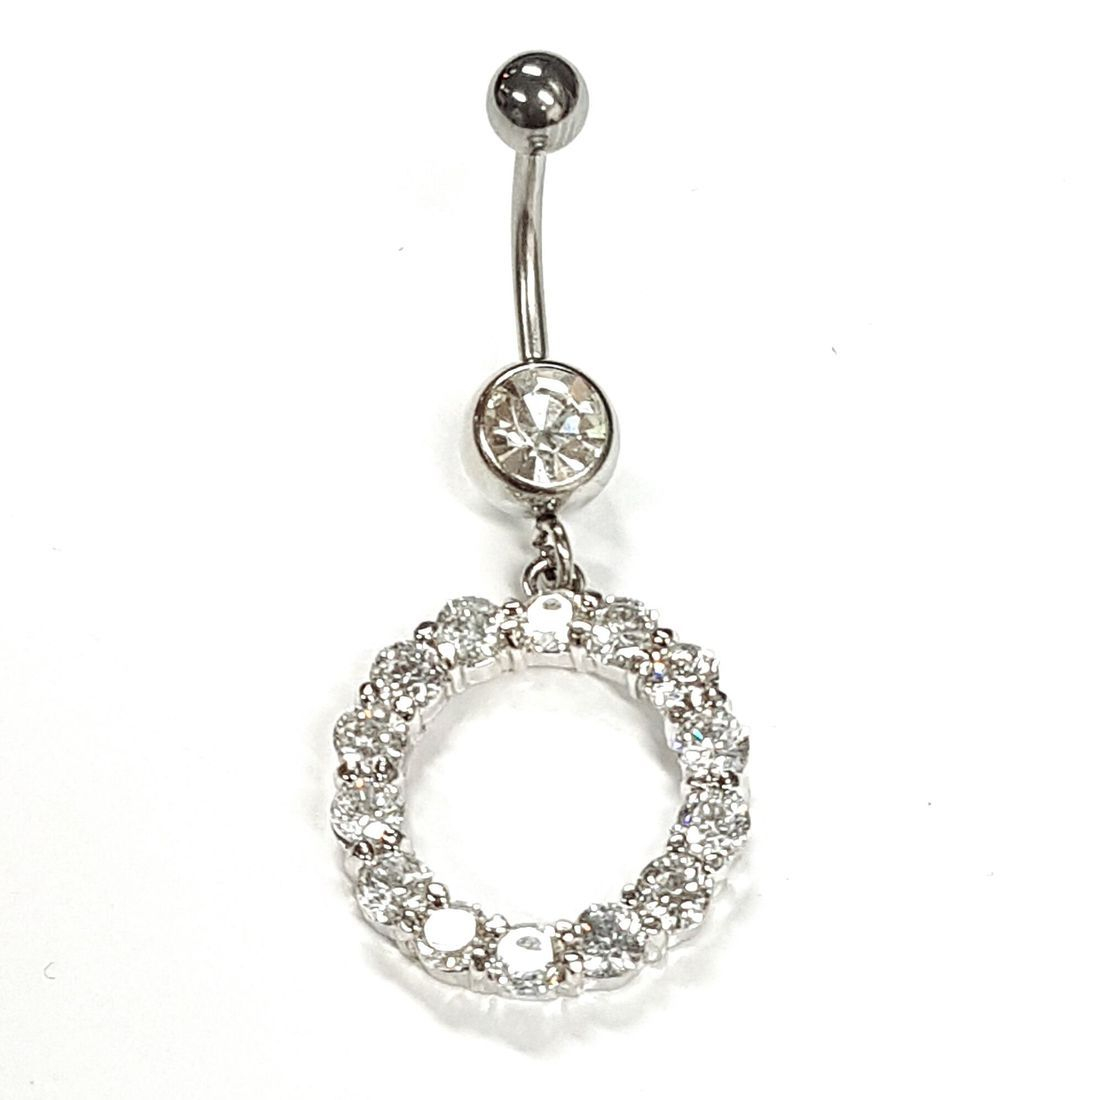 1.6mm x 10mm Clear Crystal Circle Titanium Navel Bar   available at Kazbah online and our Leicester City Centre Shop